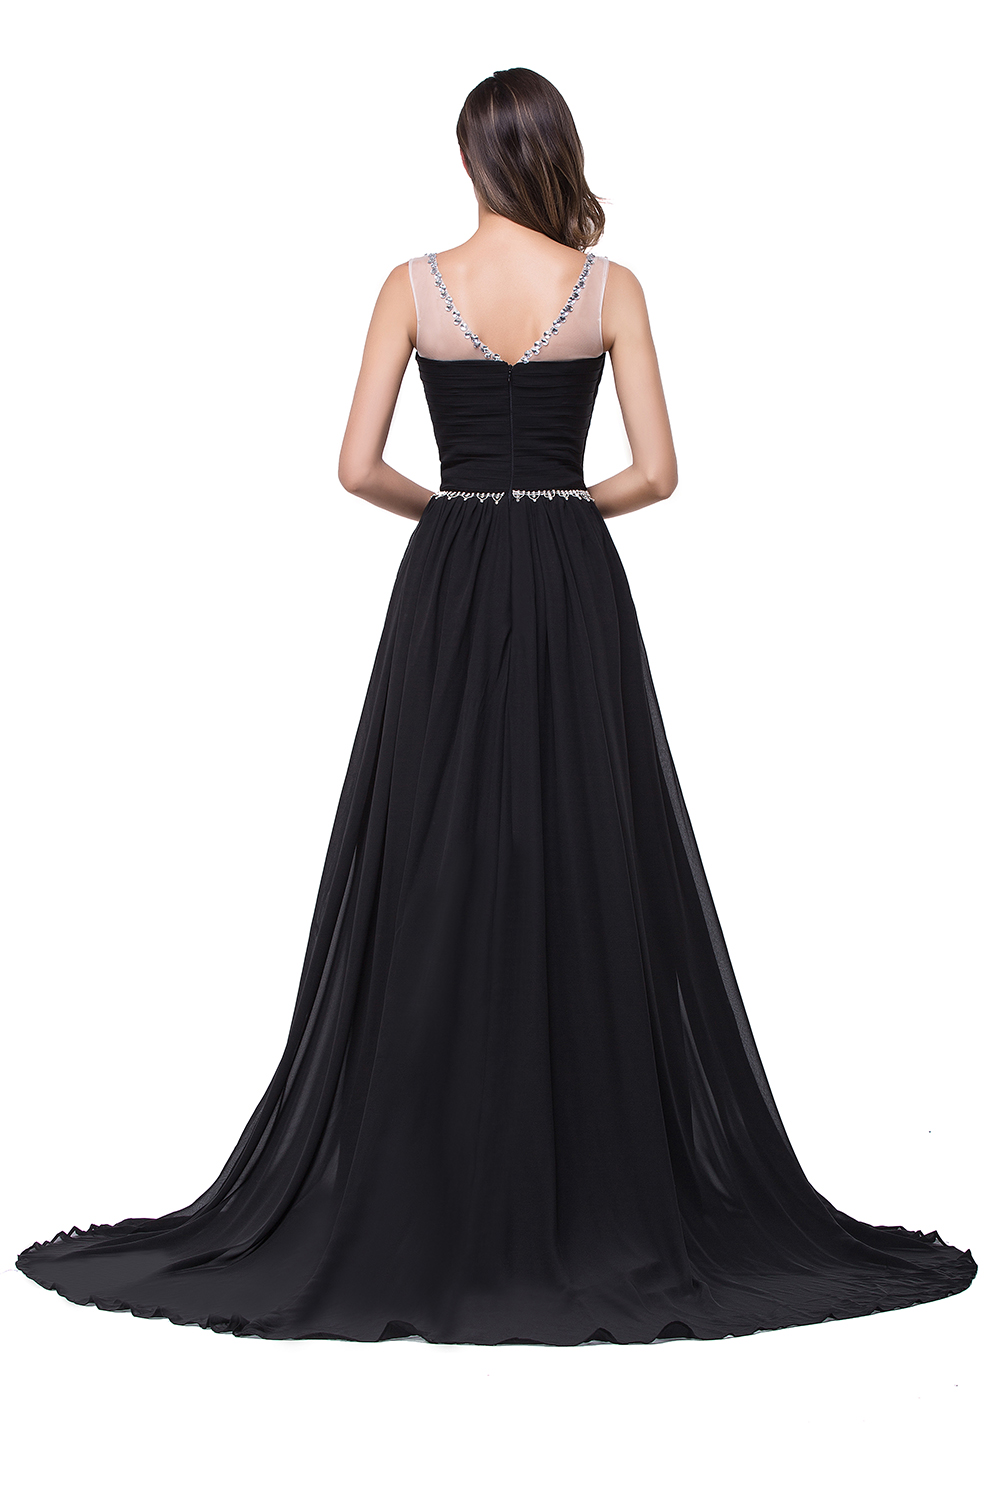 In stock Robe De Soiree Flowing Chiffon Long Evening Dresses Elegant 2017  Tulle Neck Crystals Beaded Prom Party Dresses-in Evening Dresses from  Weddings ... ebf6a0c4379e